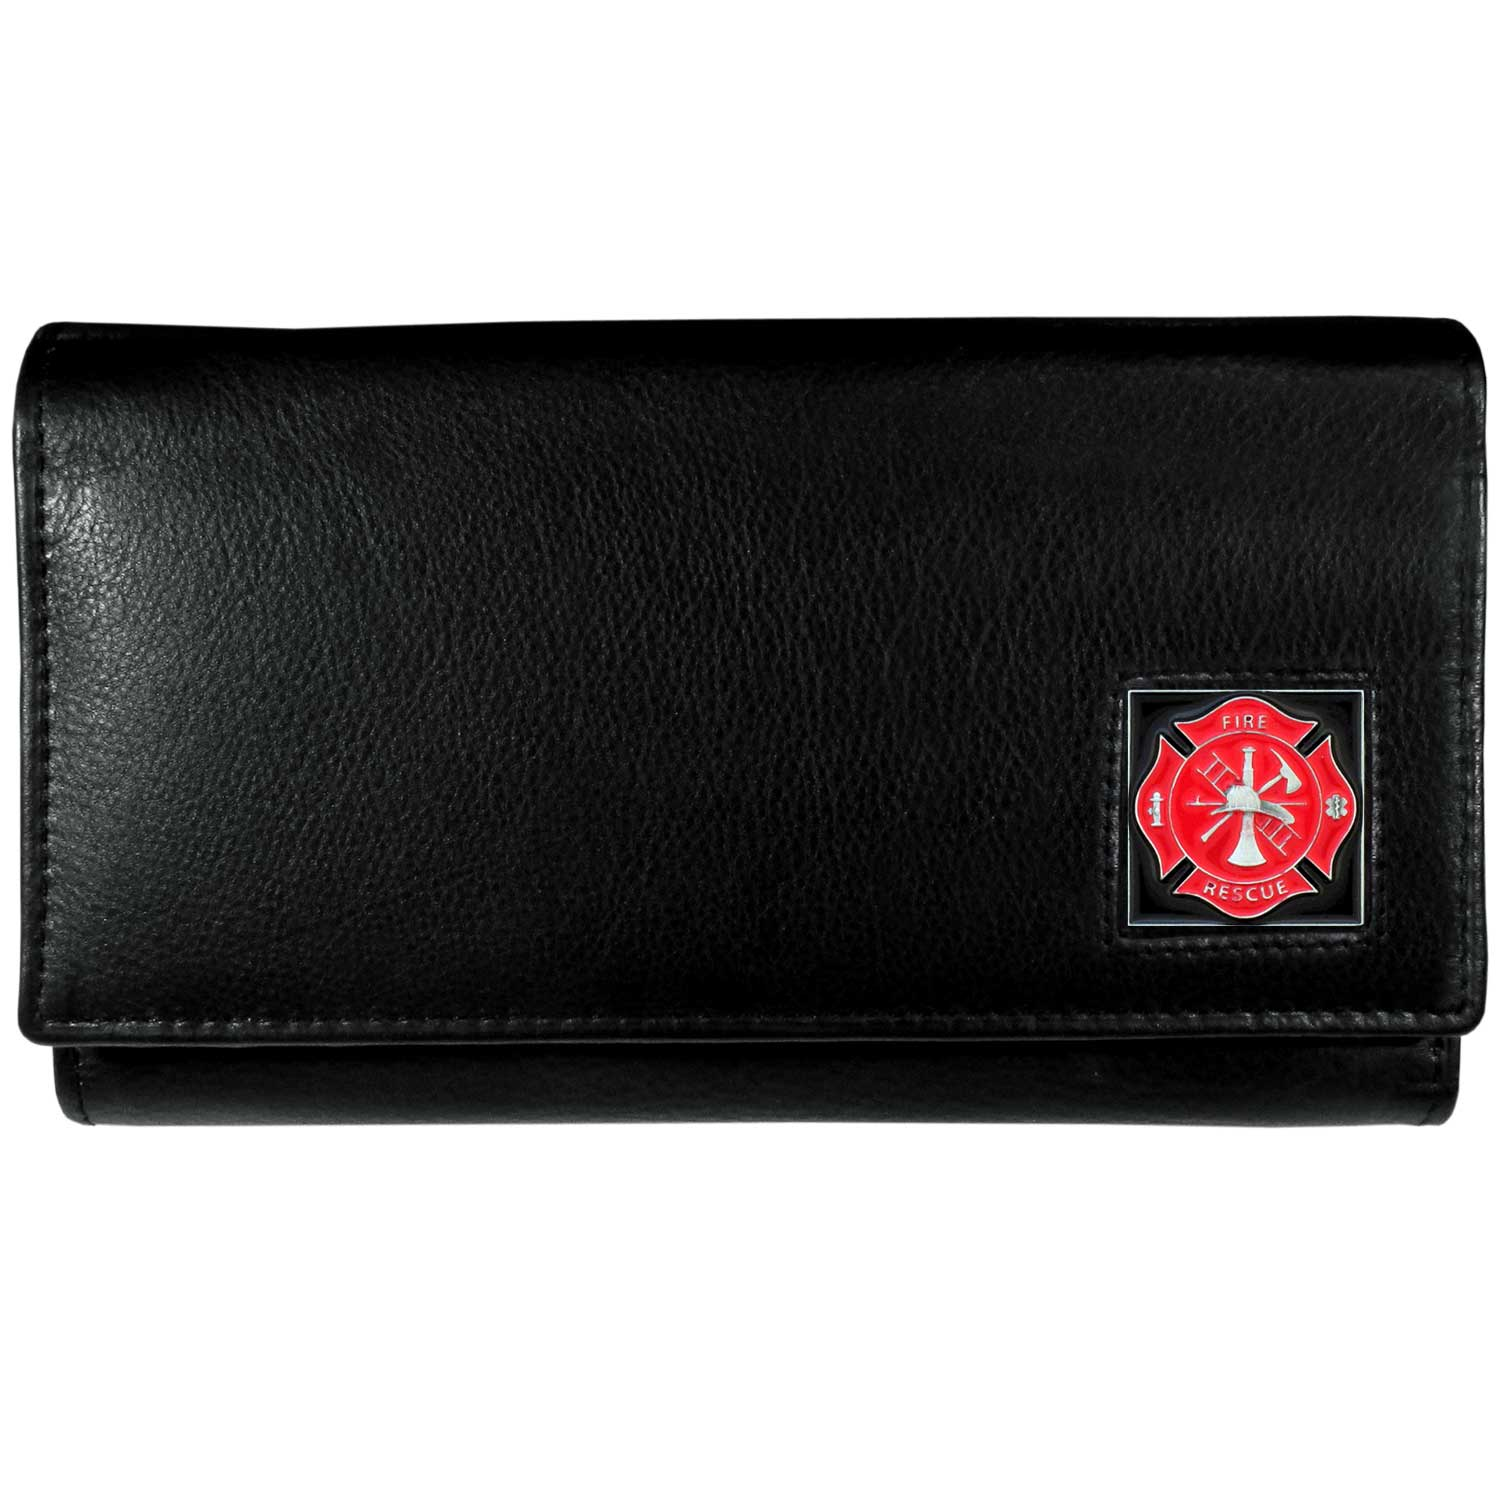 Women's Wallet - Firefighter - This genuine leather women's clutch features 9 credit card slots, a windowed ID slot, spacious front pocket, inner pocket and zippered coin pocket. The front of the pocketbook has a hand painted metal square.